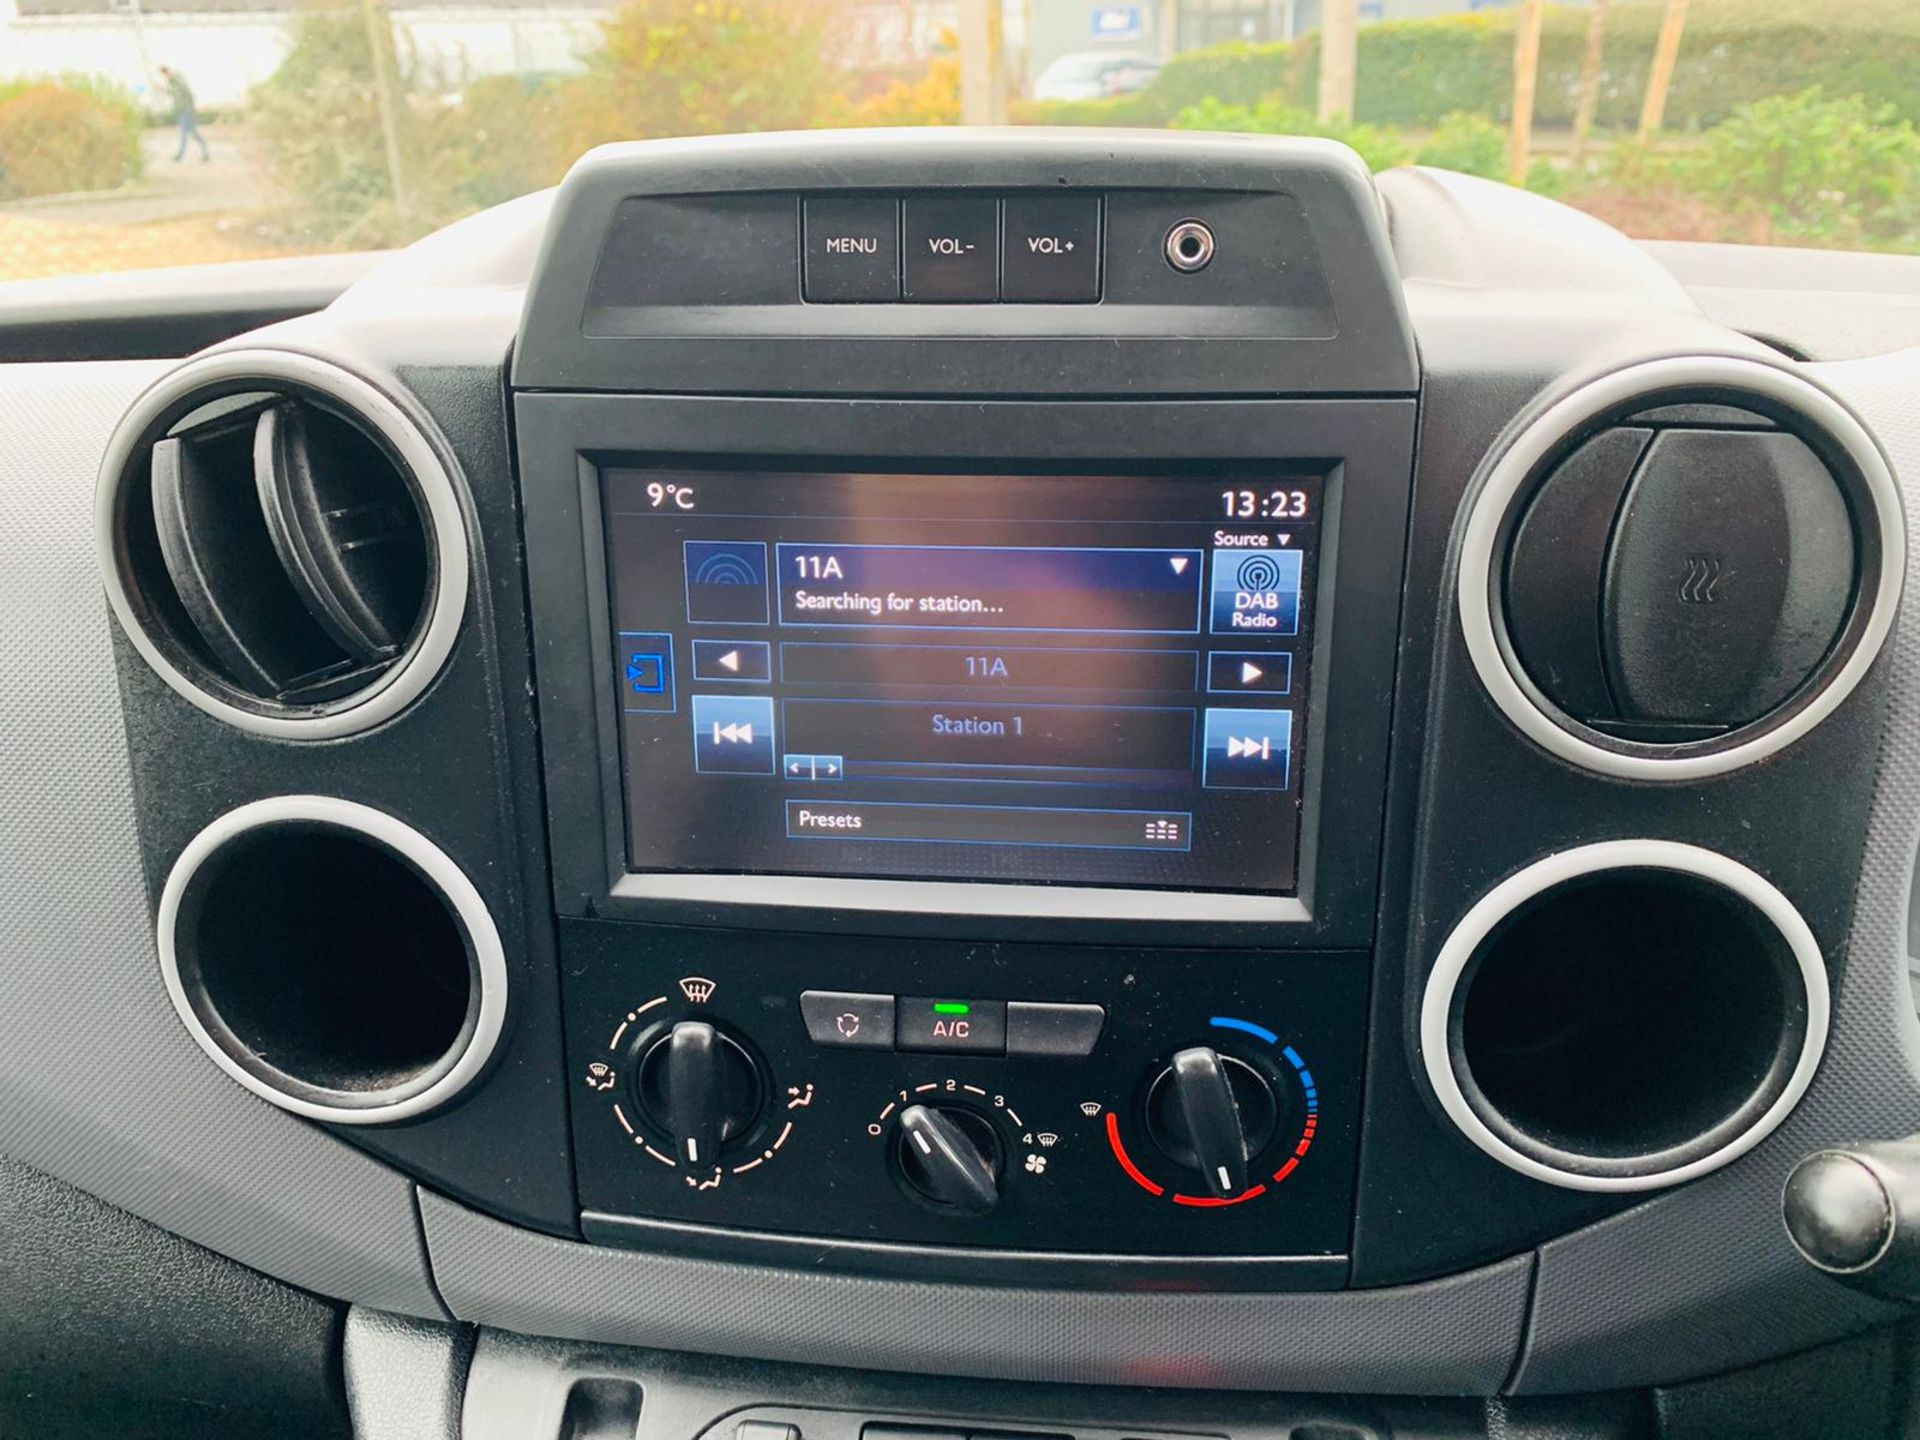 (RESERVE MET) Peugeot Partner 1.6 HDI Professional - 2017 Model - Air Con - Service History - Image 18 of 22